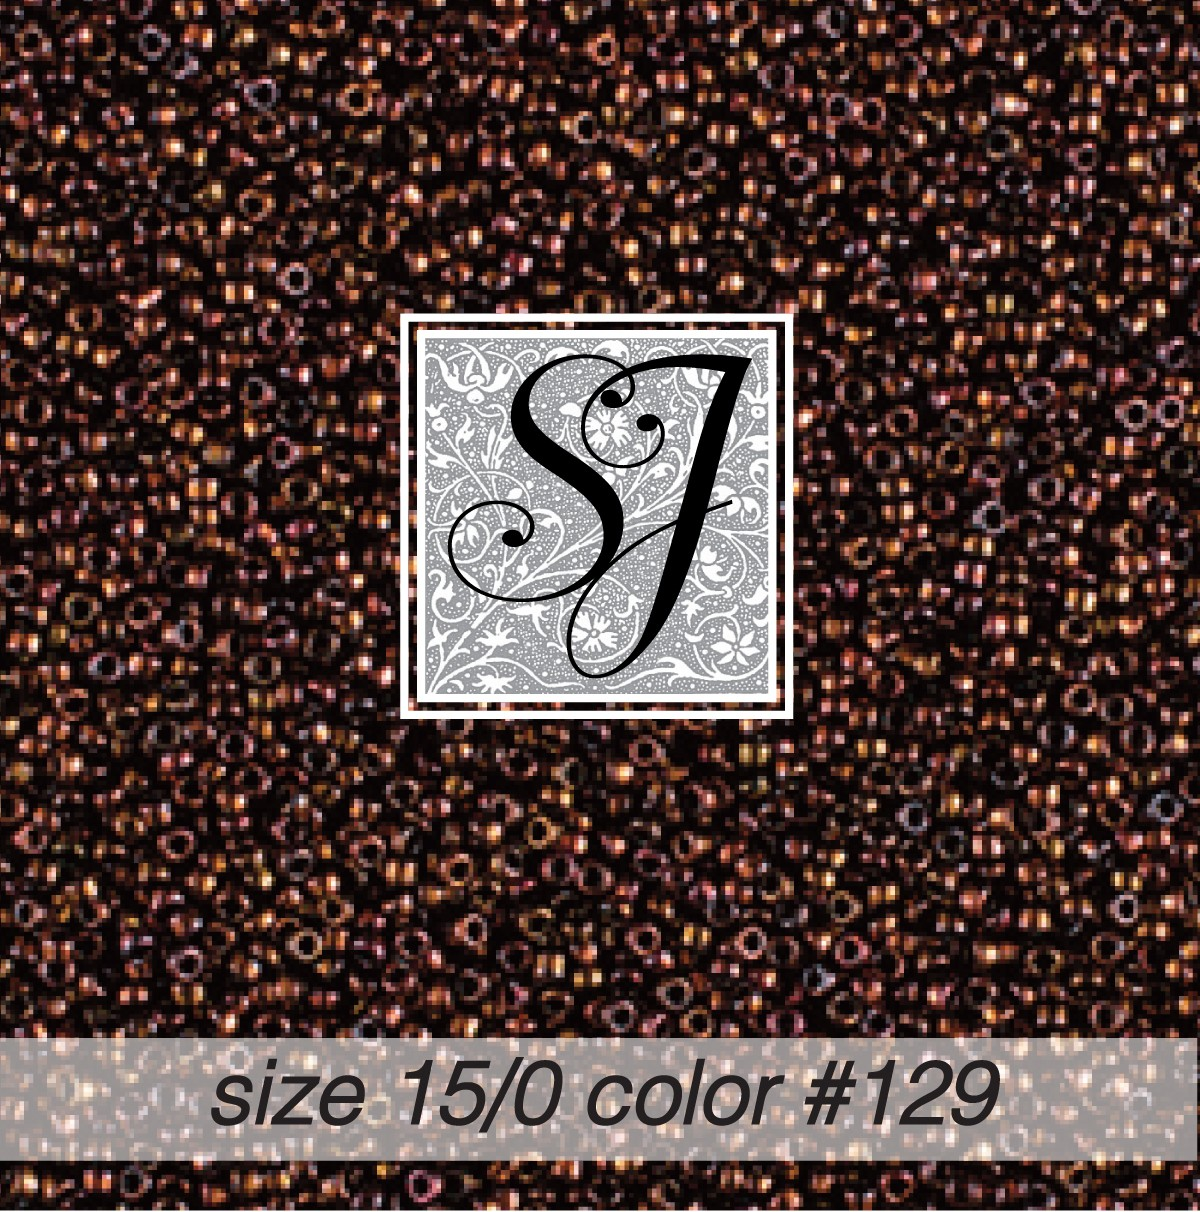 129 Dark Copper 15/0 Seed Bead